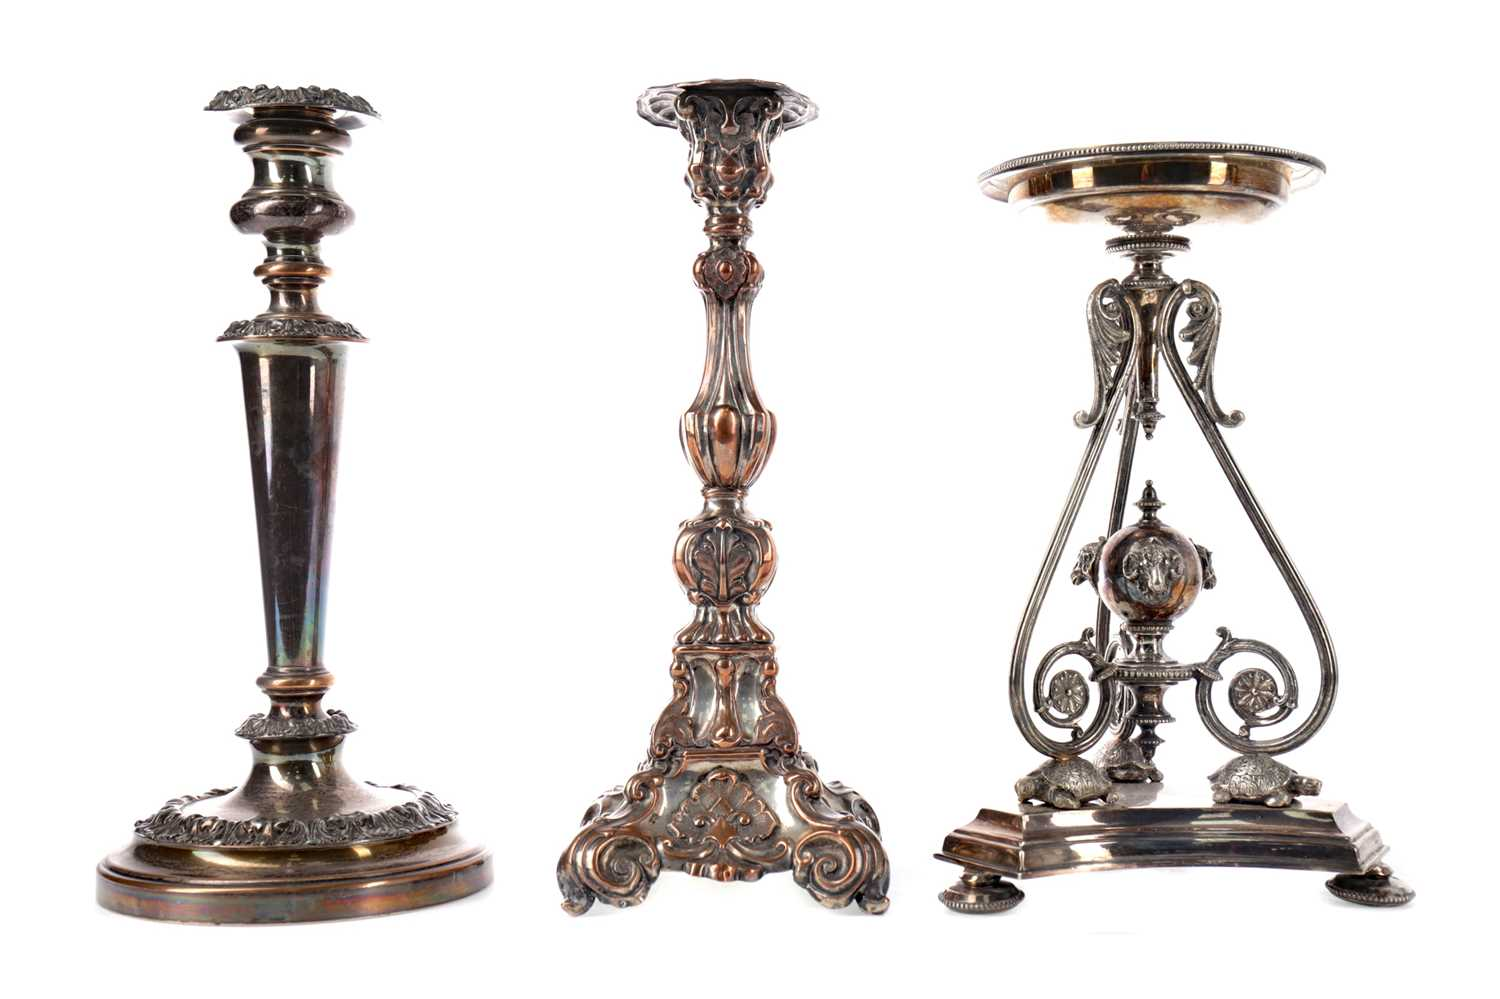 Lot 93 - A LATE 19TH CENTURY SILVER PLATED CENTREPIECE, ALONG WITH FOUR CANDLESTICKS